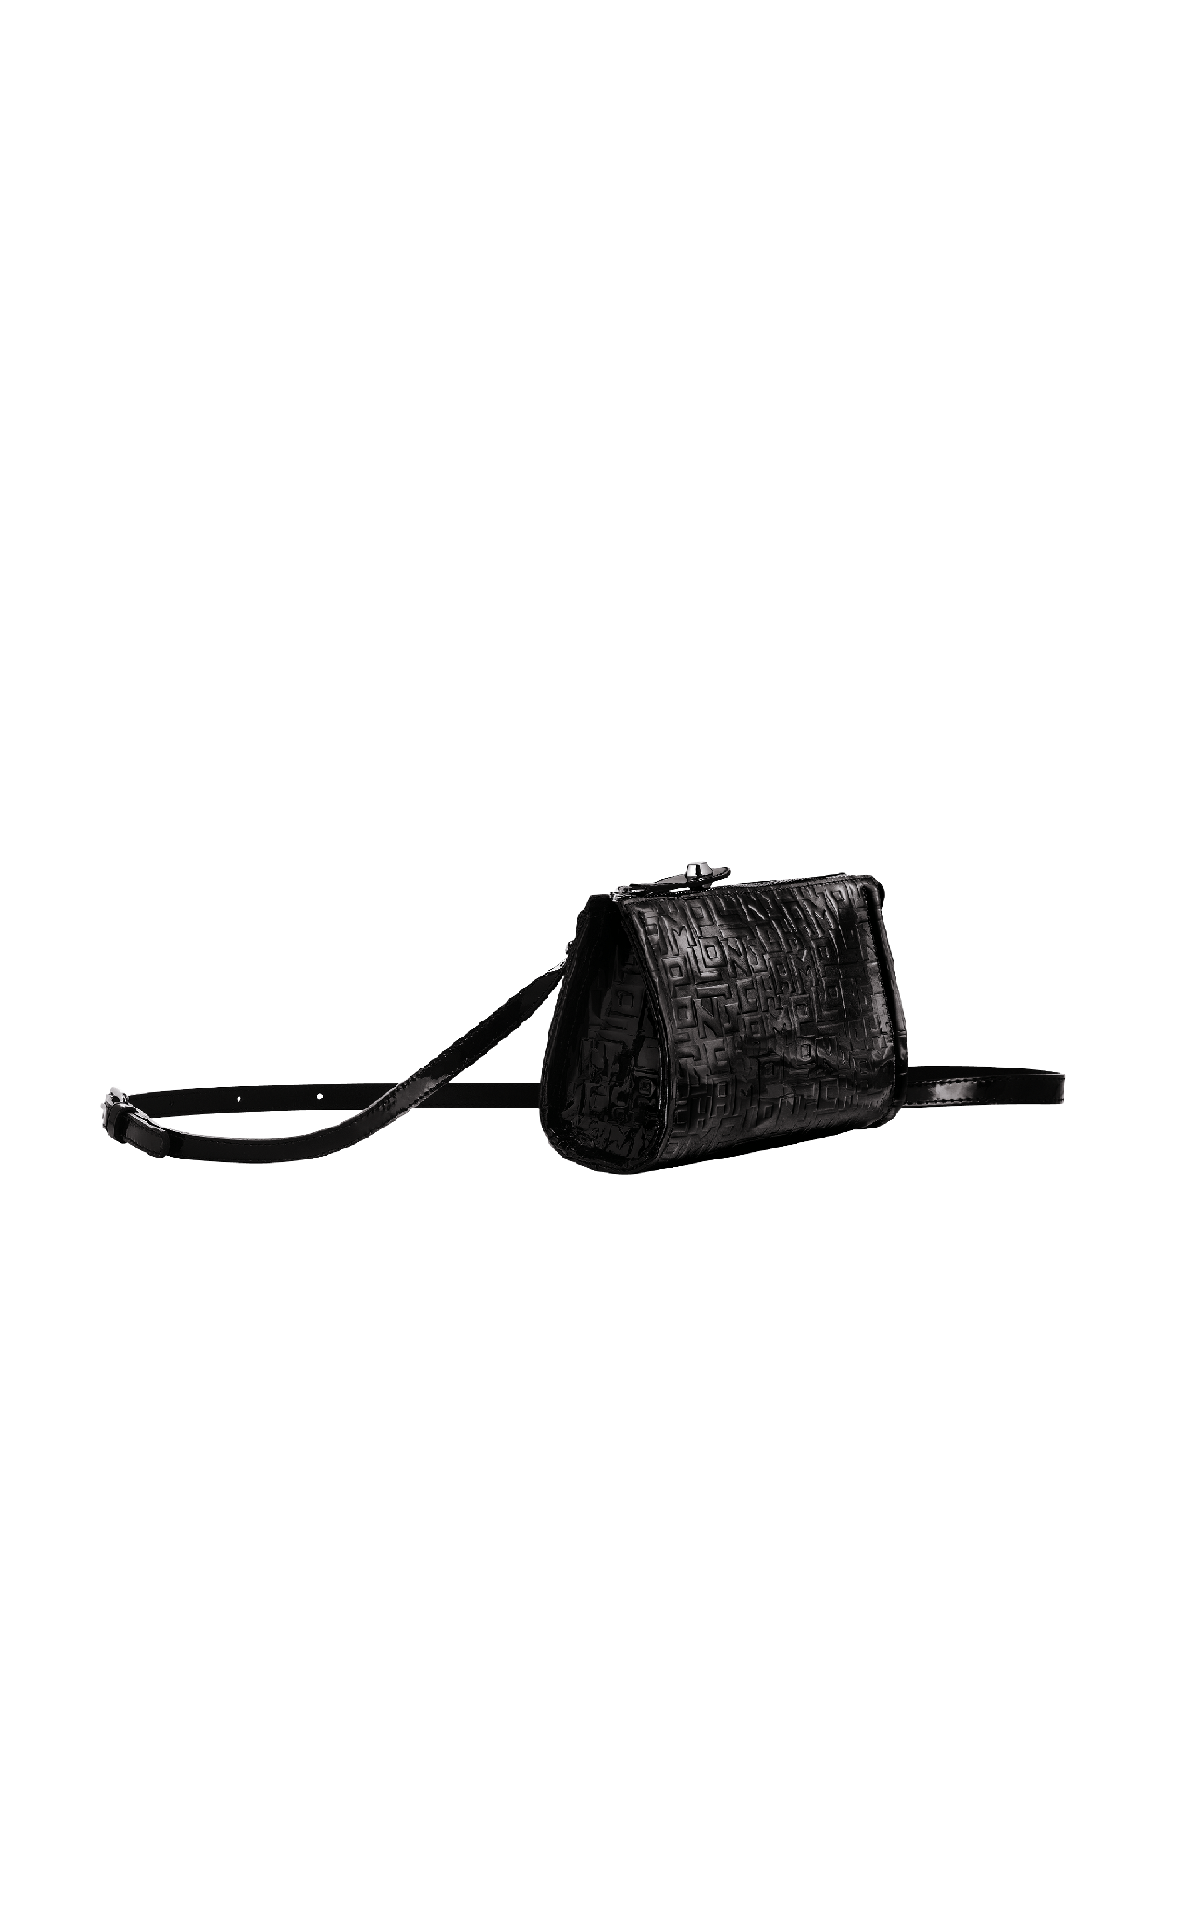 Small black printed bag Longchamp